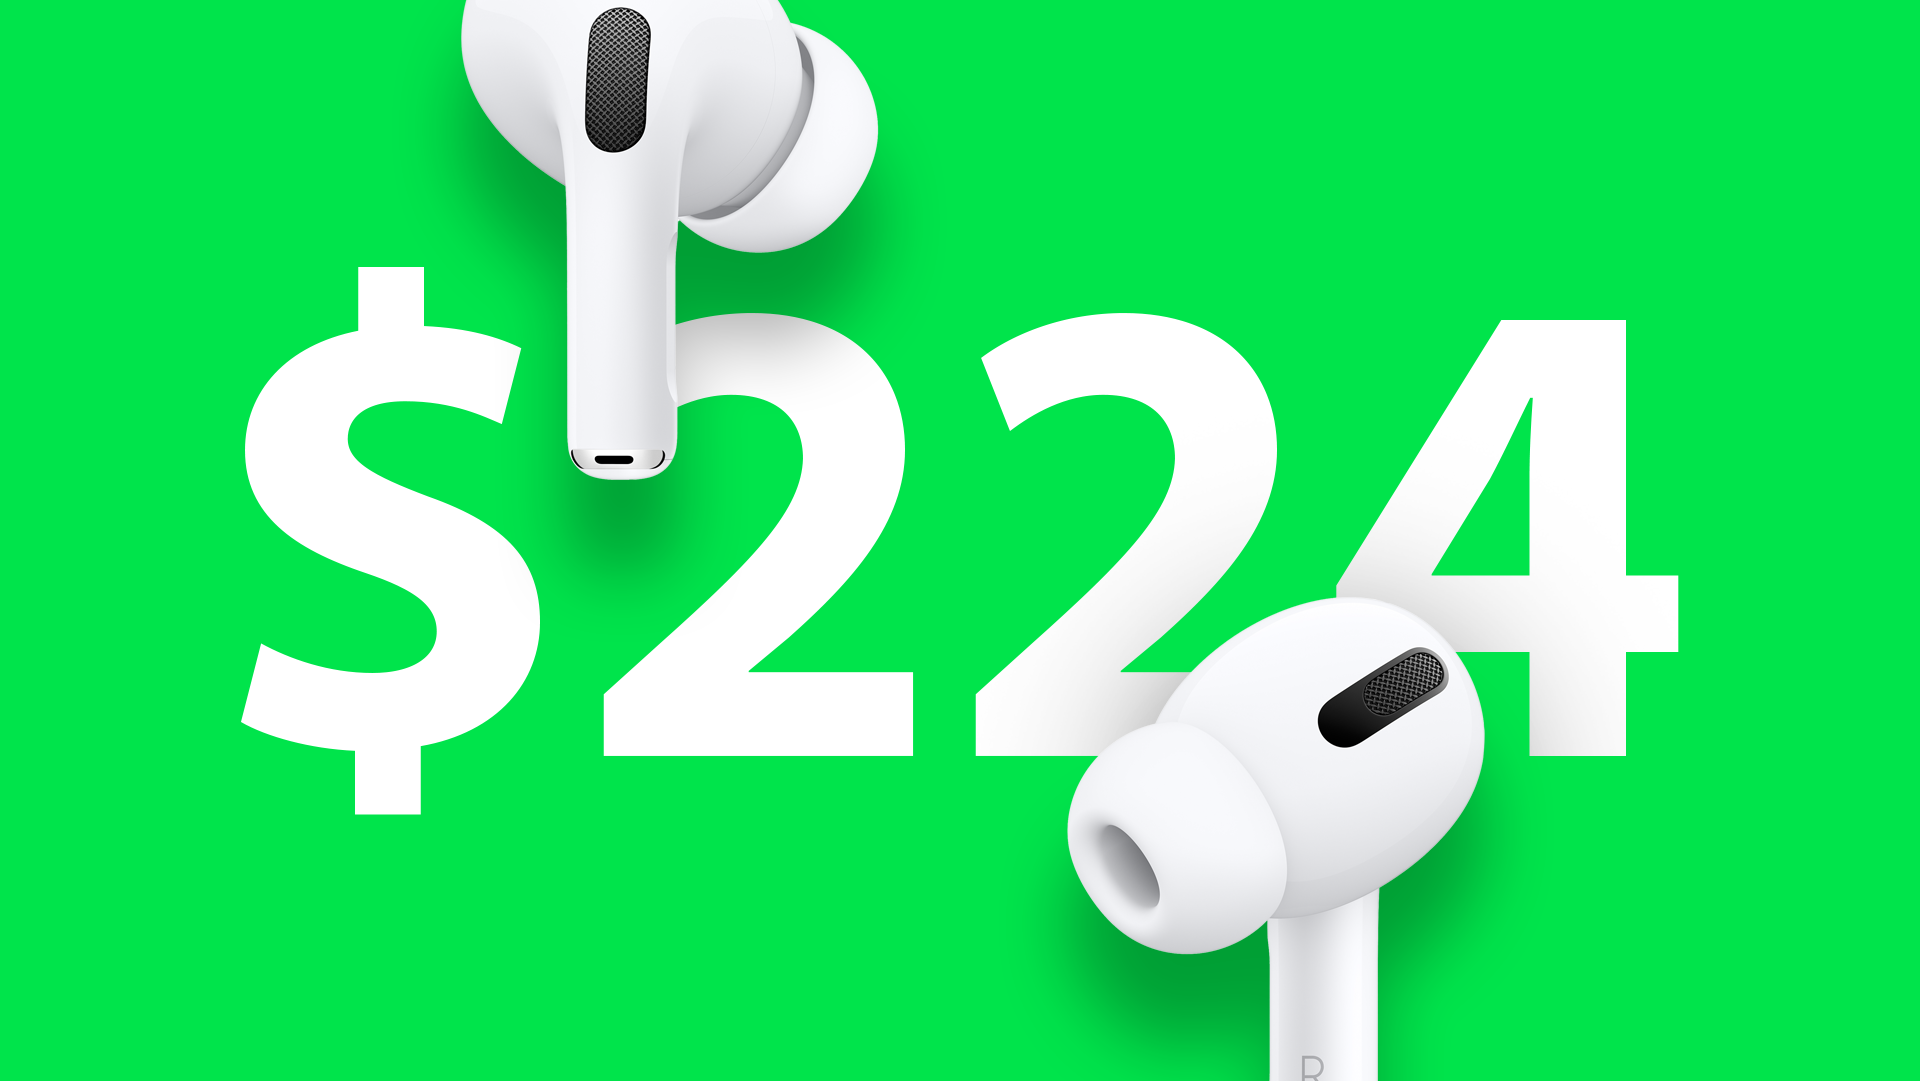 Read more about the article Deals: Get Apple's AirPods Pro Headphones for $224 at AT&T ($25 Off)